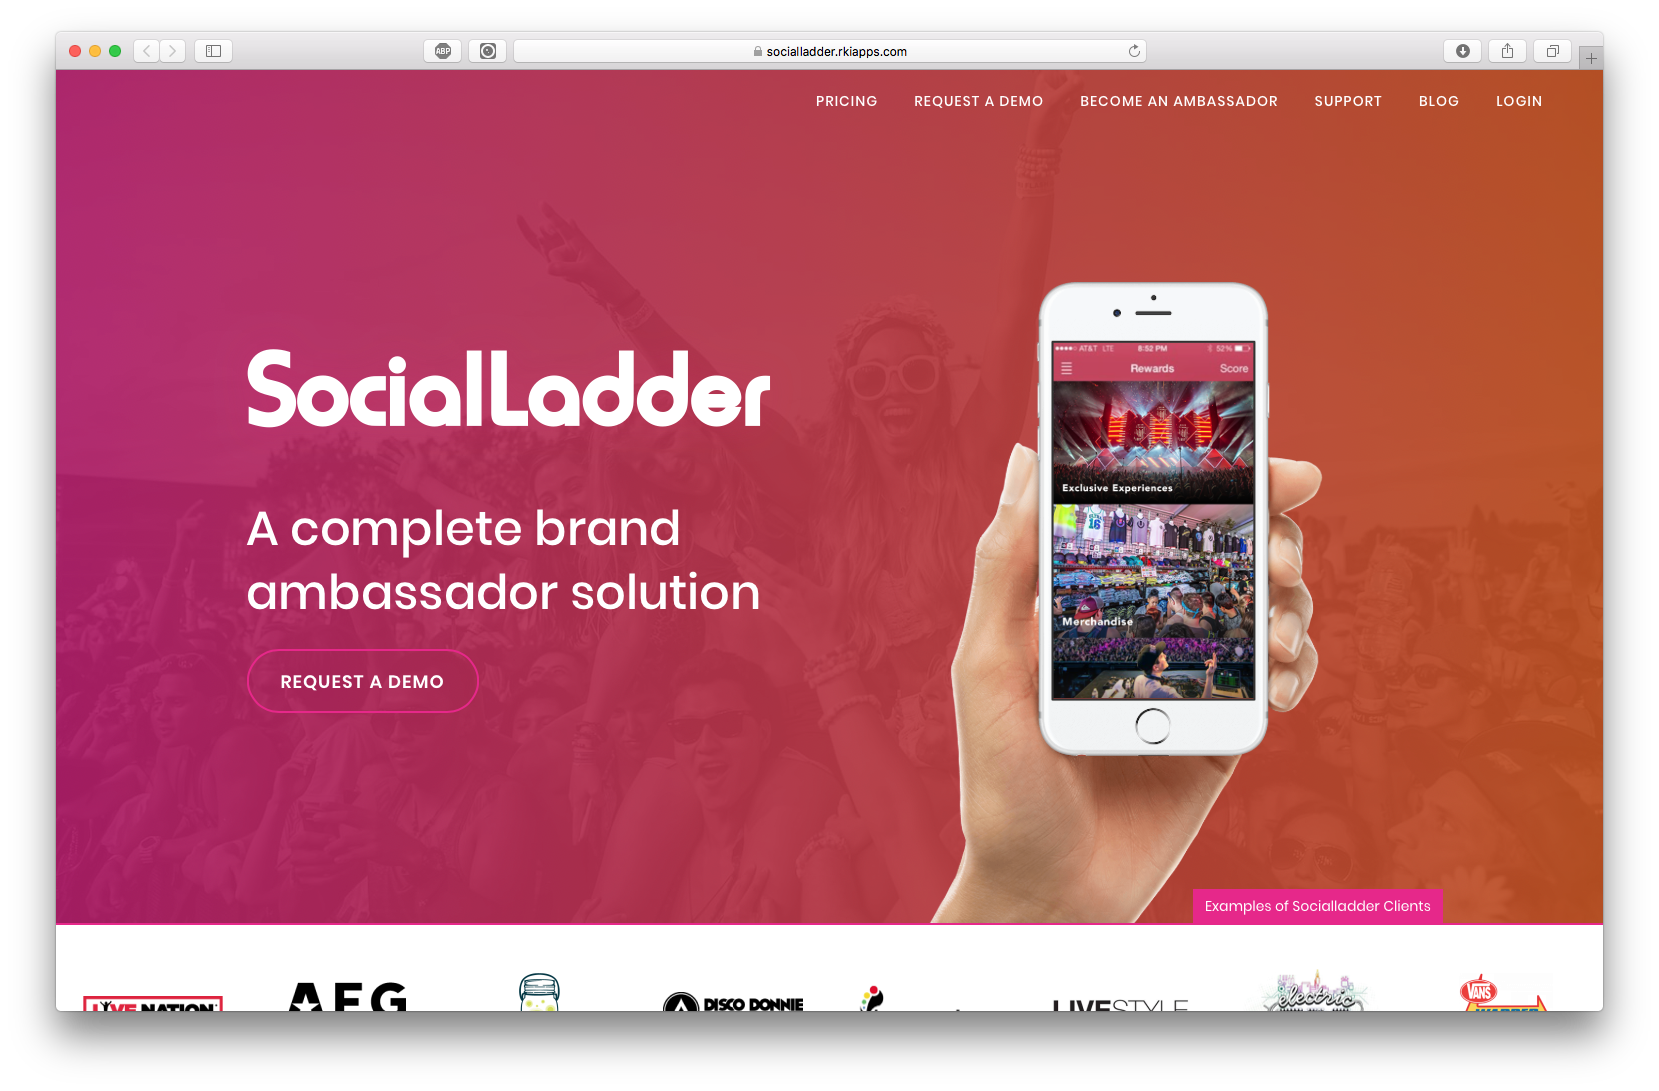 Social Ladder gets your fans and their network to sell more and drive more buzz for your events